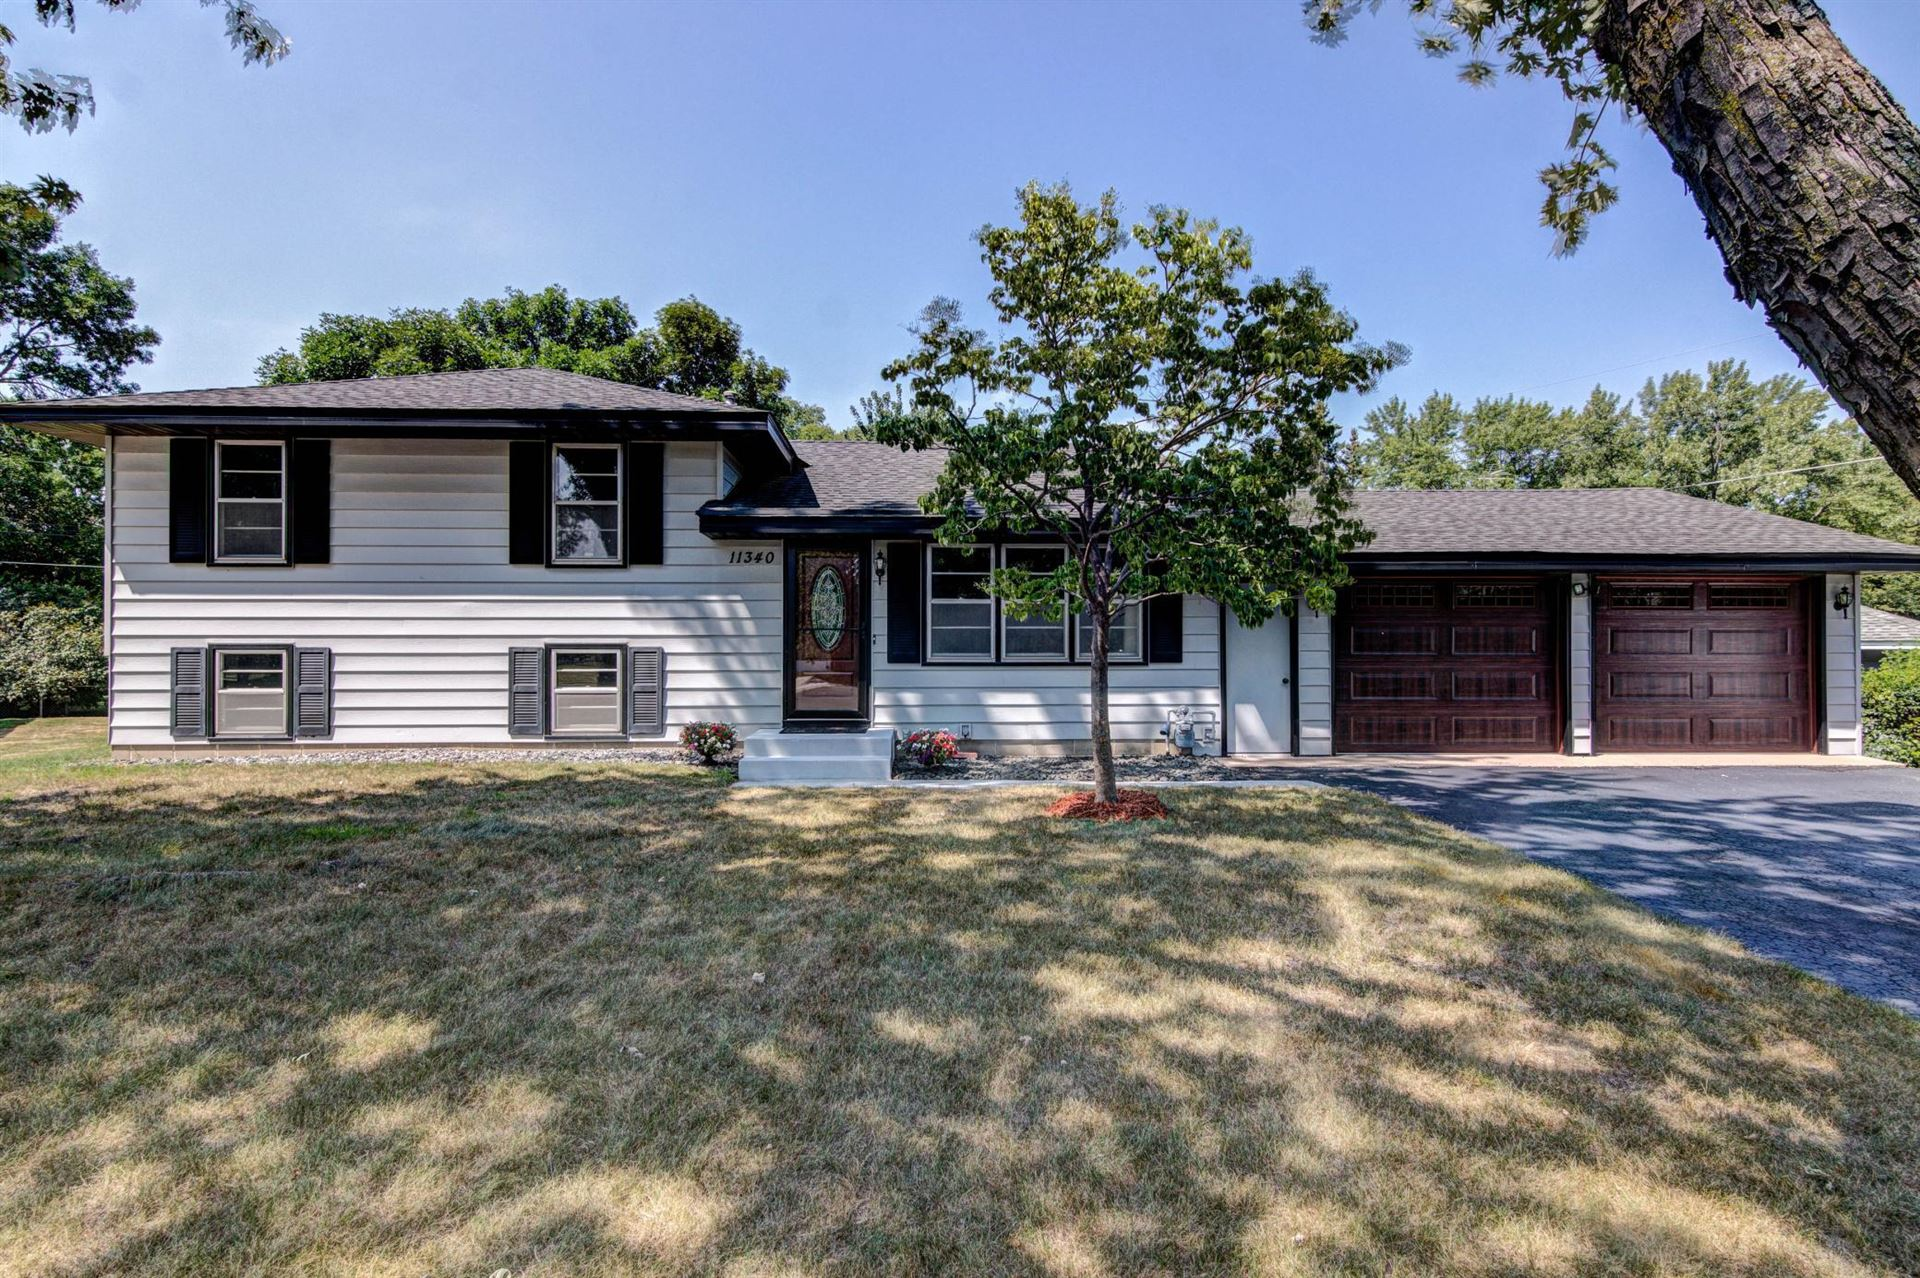 11340 Gladiola Street NW, Coon Rapids, MN 55433 - #: 5615339